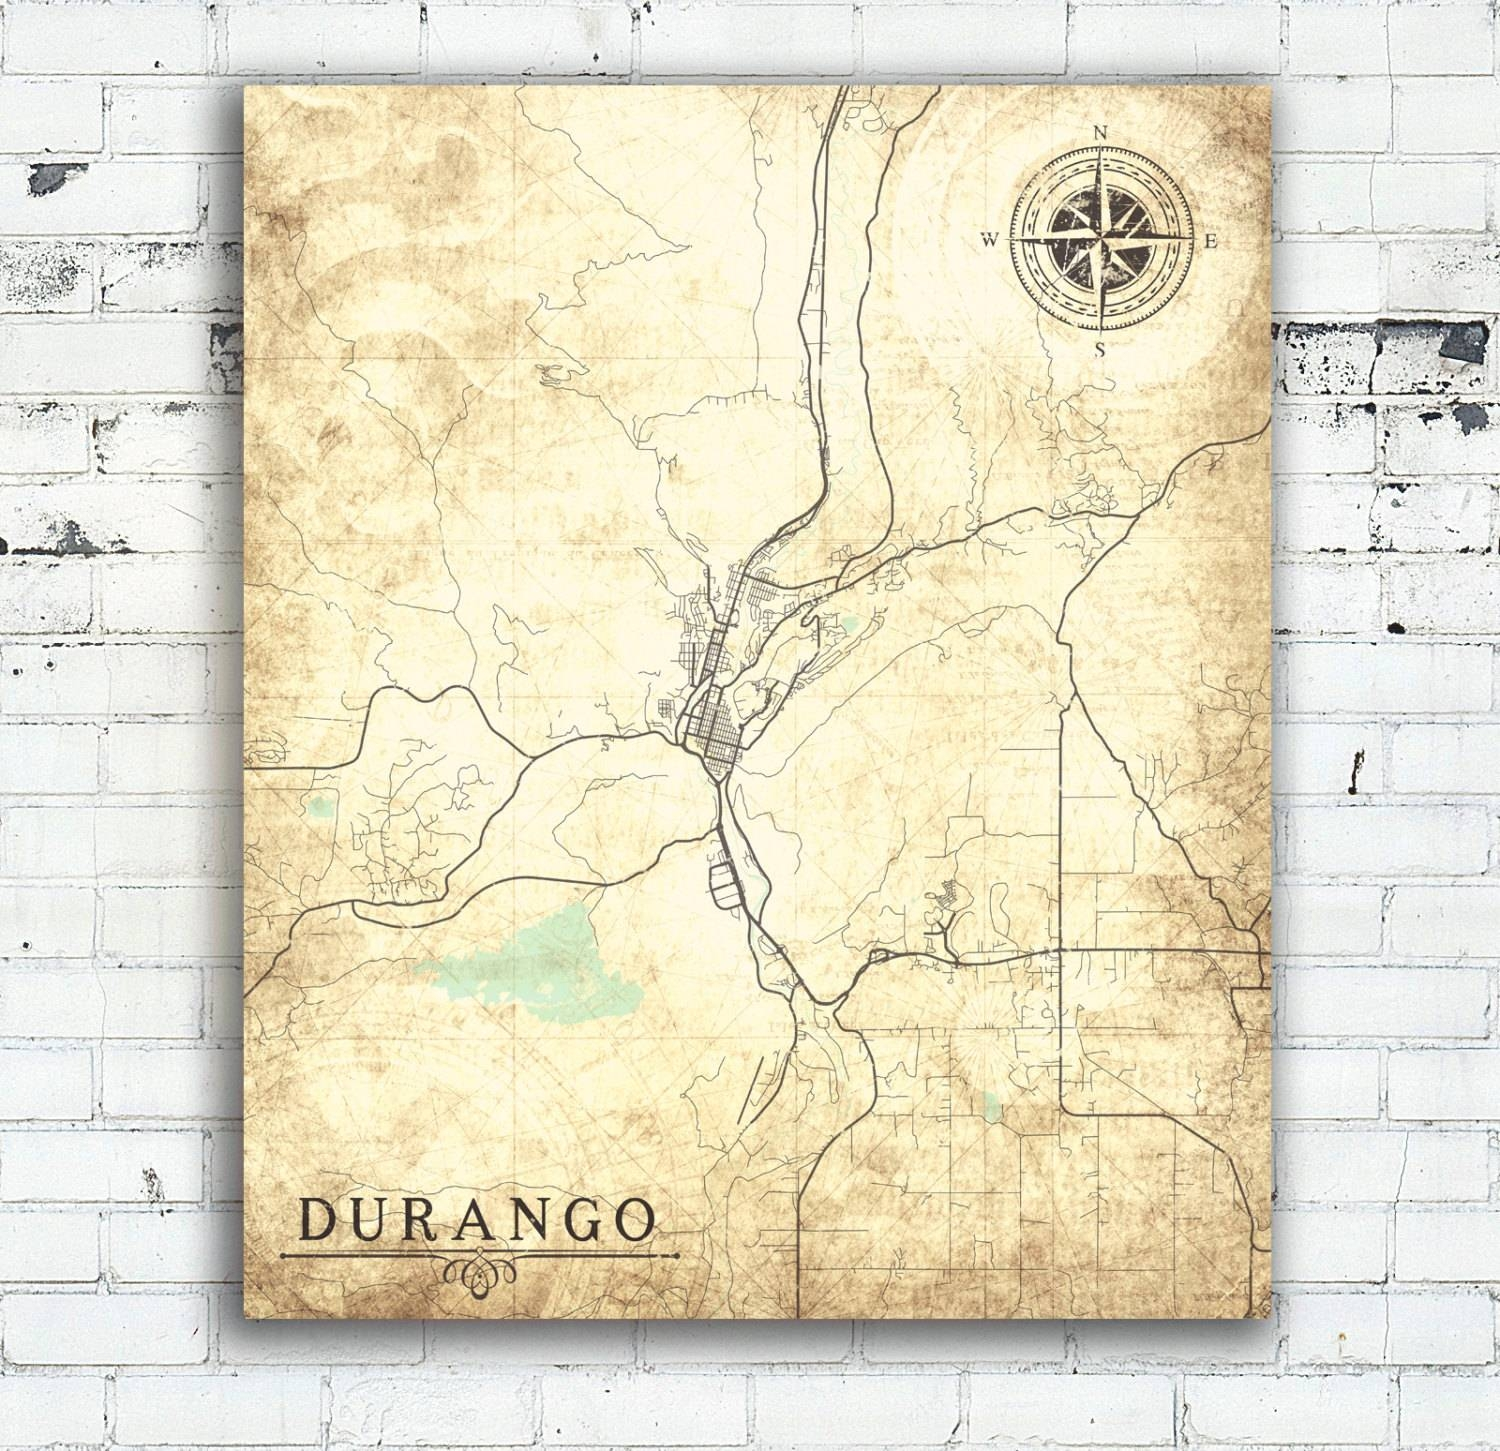 Durango Co Colorado Vintage Map Durango Vintage City Wall Art In Recent Florida Map Wall Art (View 3 of 20)